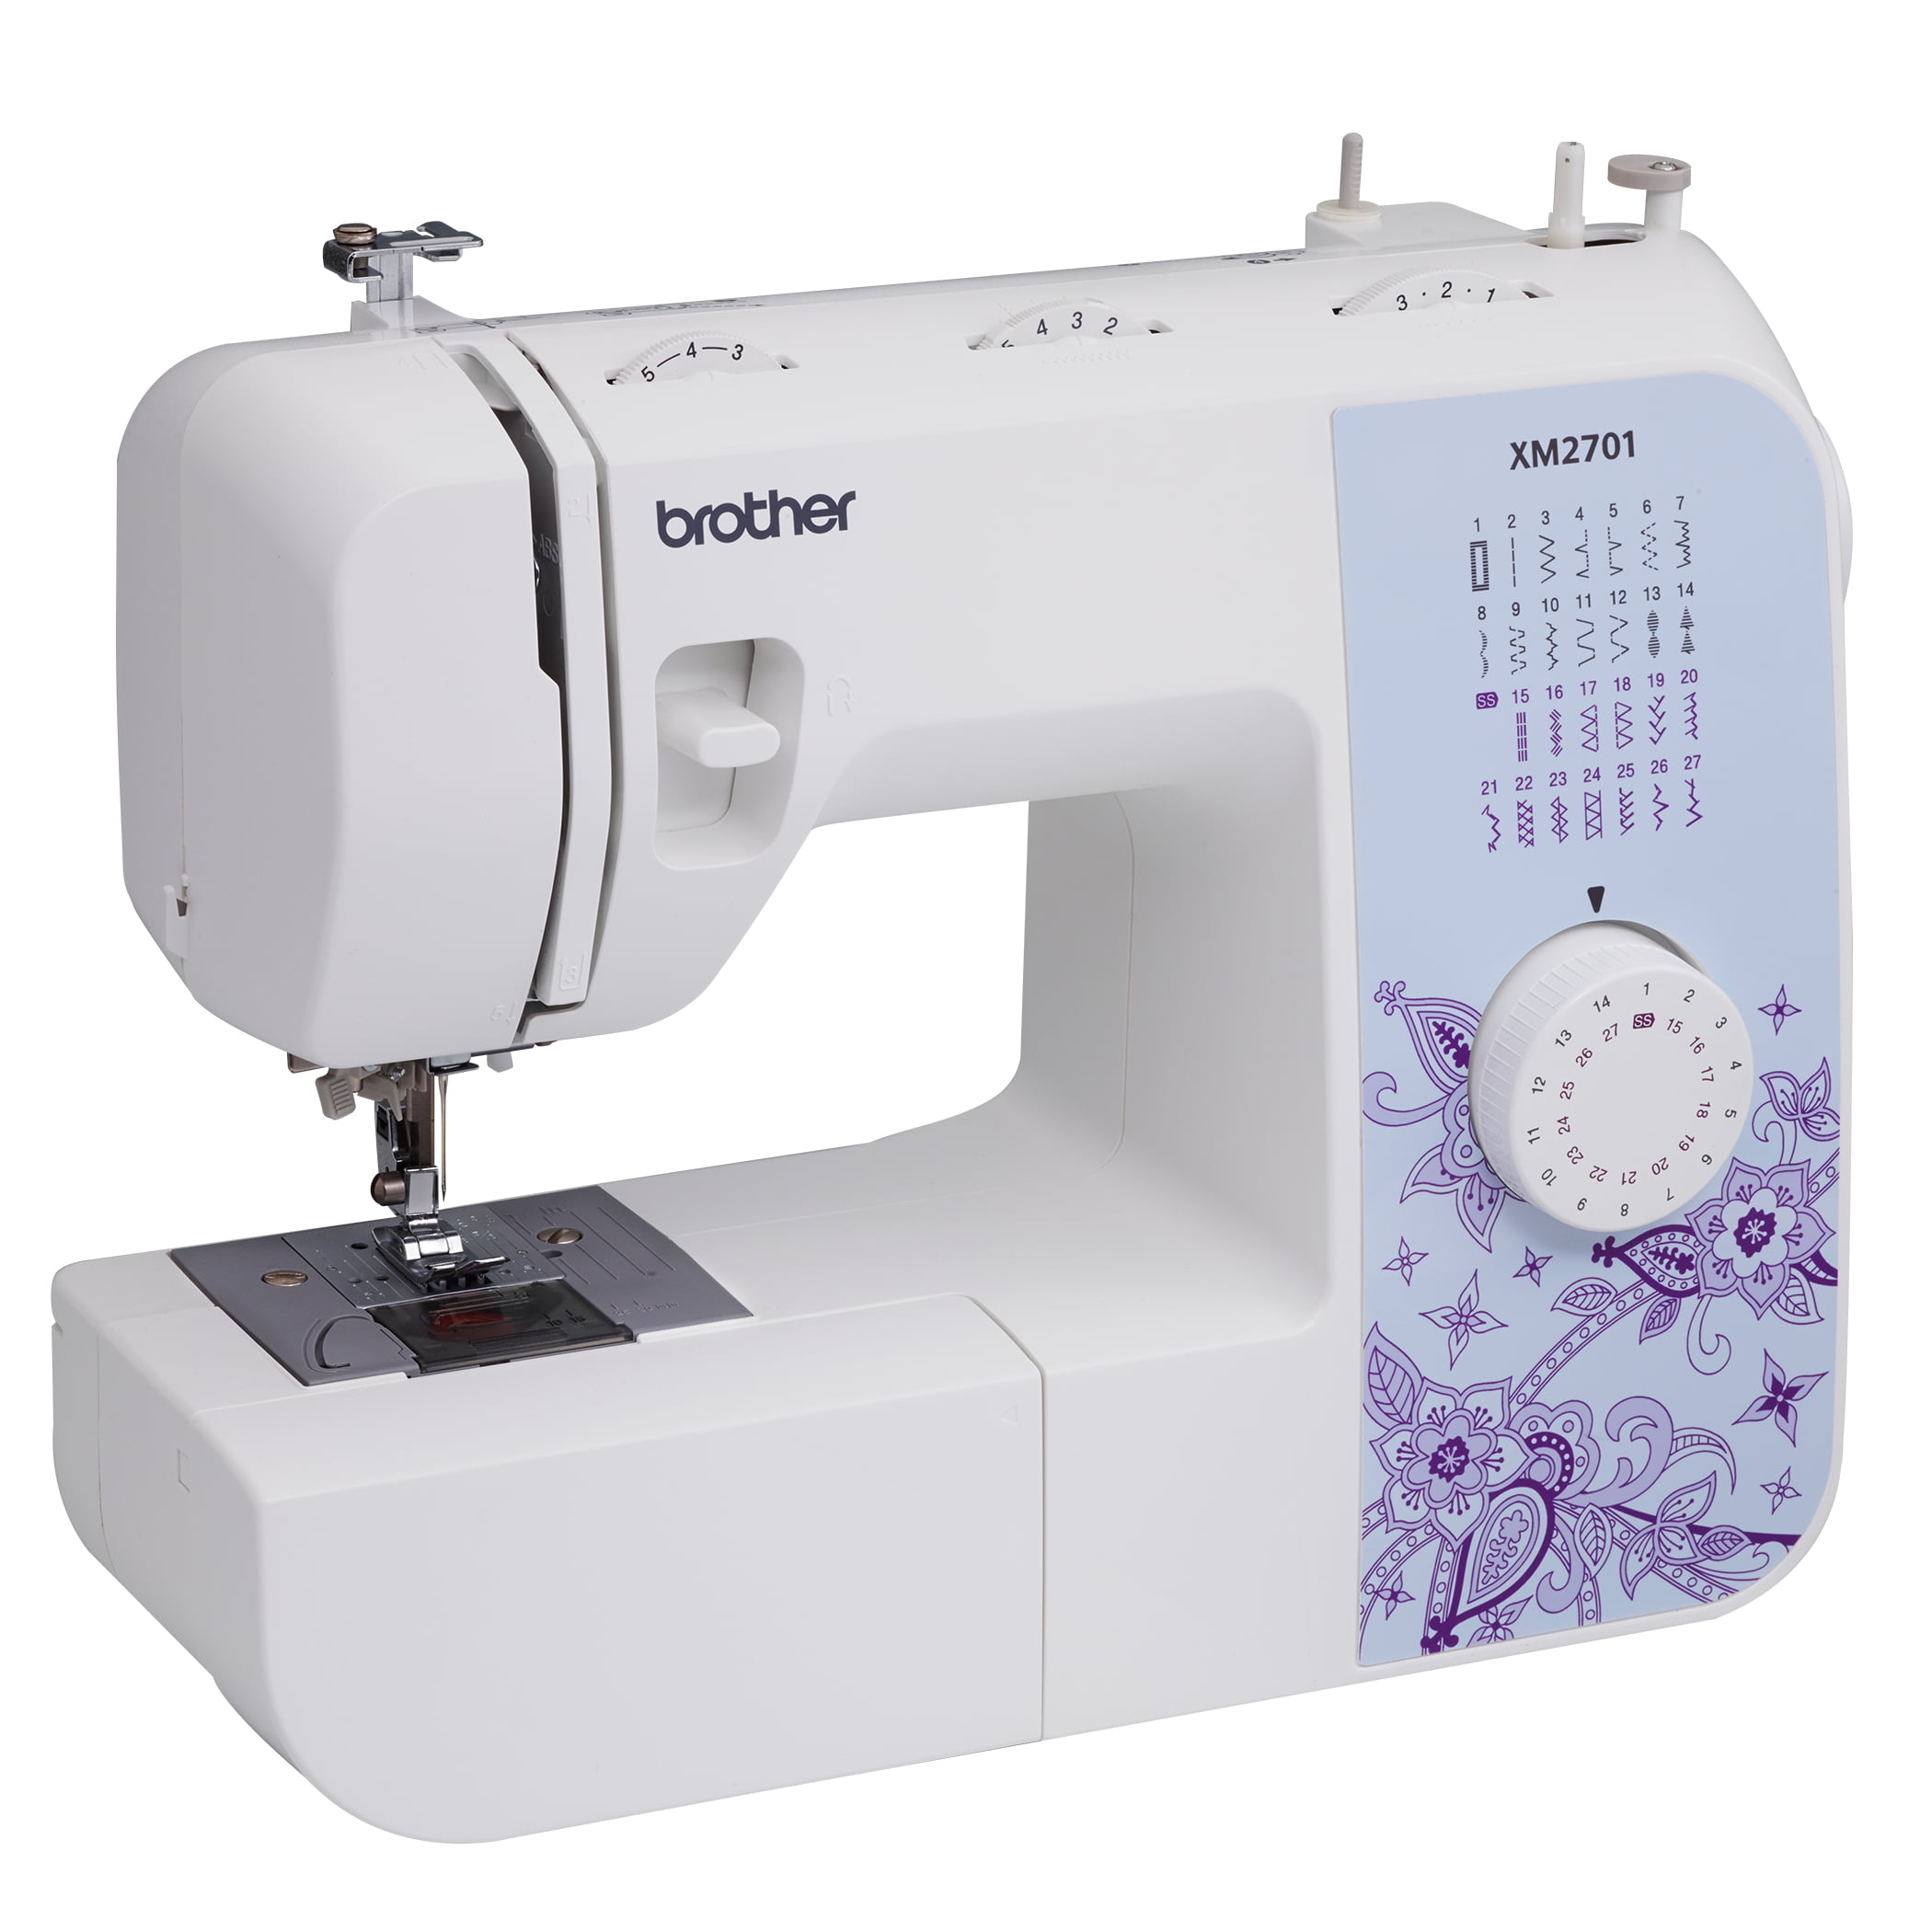 Brother Xm2701 Lightweight Full Featured Sewing Machine With 27